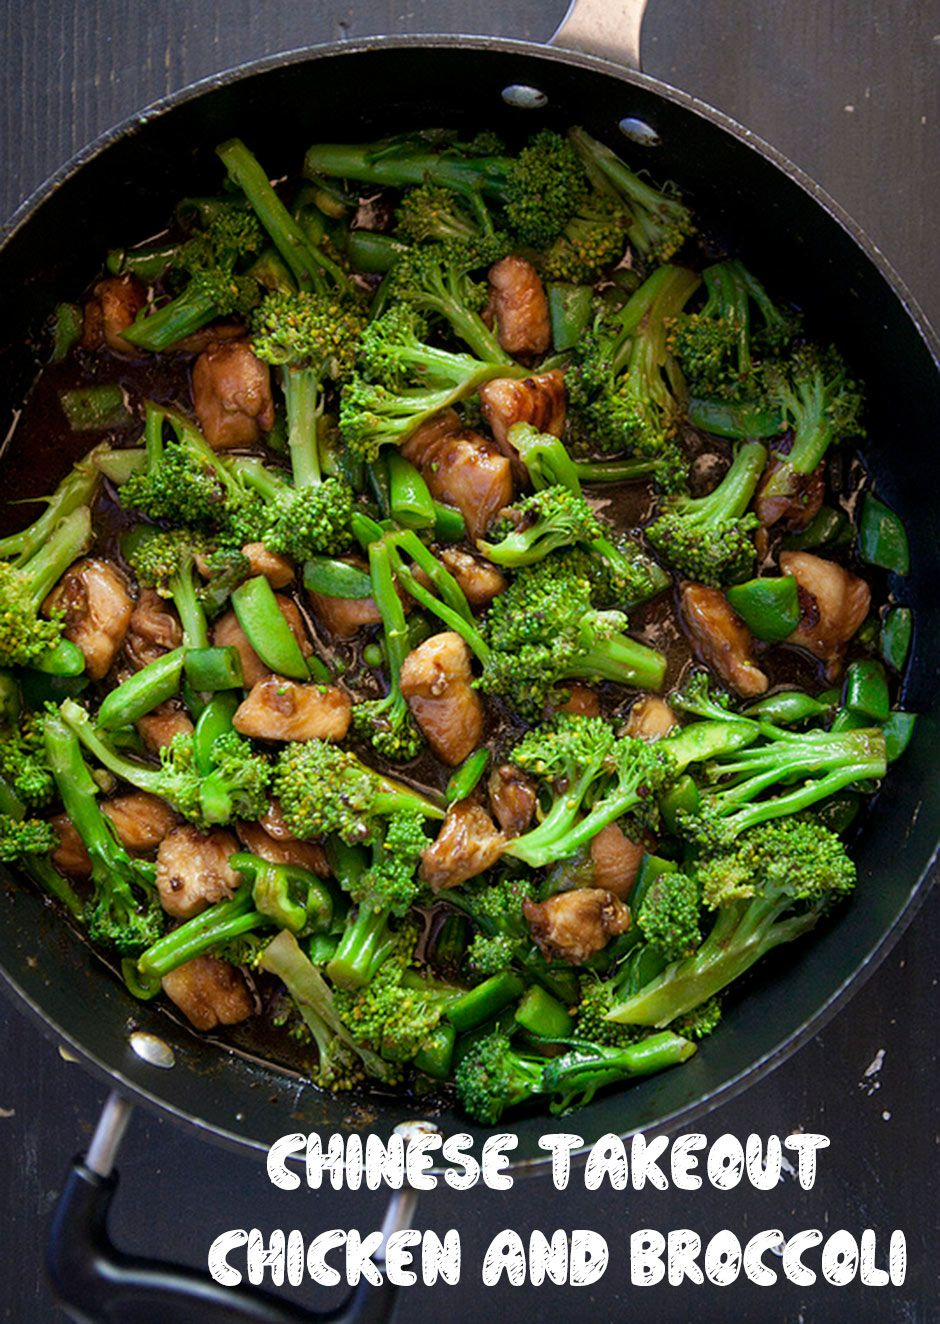 Chinese takeout chicken and broccoli recipe broccoli foods and chinese takeout chicken and broccoli forumfinder Gallery